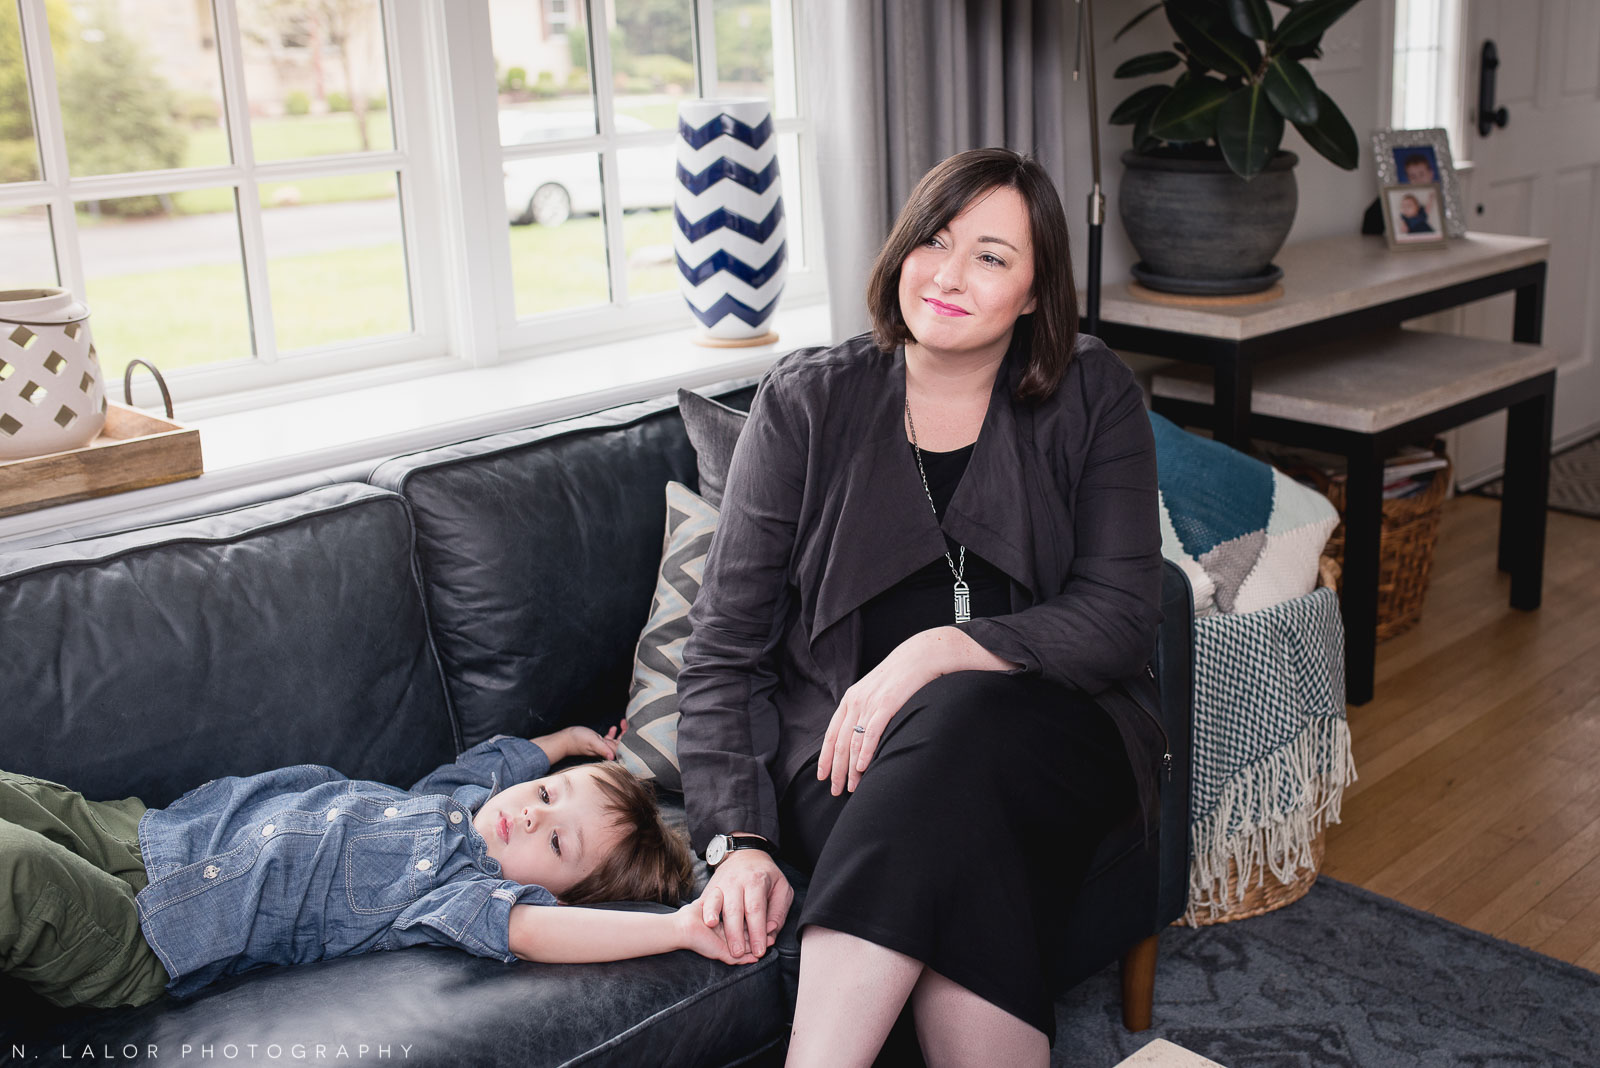 Mom with her son. Lifestyle family session by N. Lalor Photography.